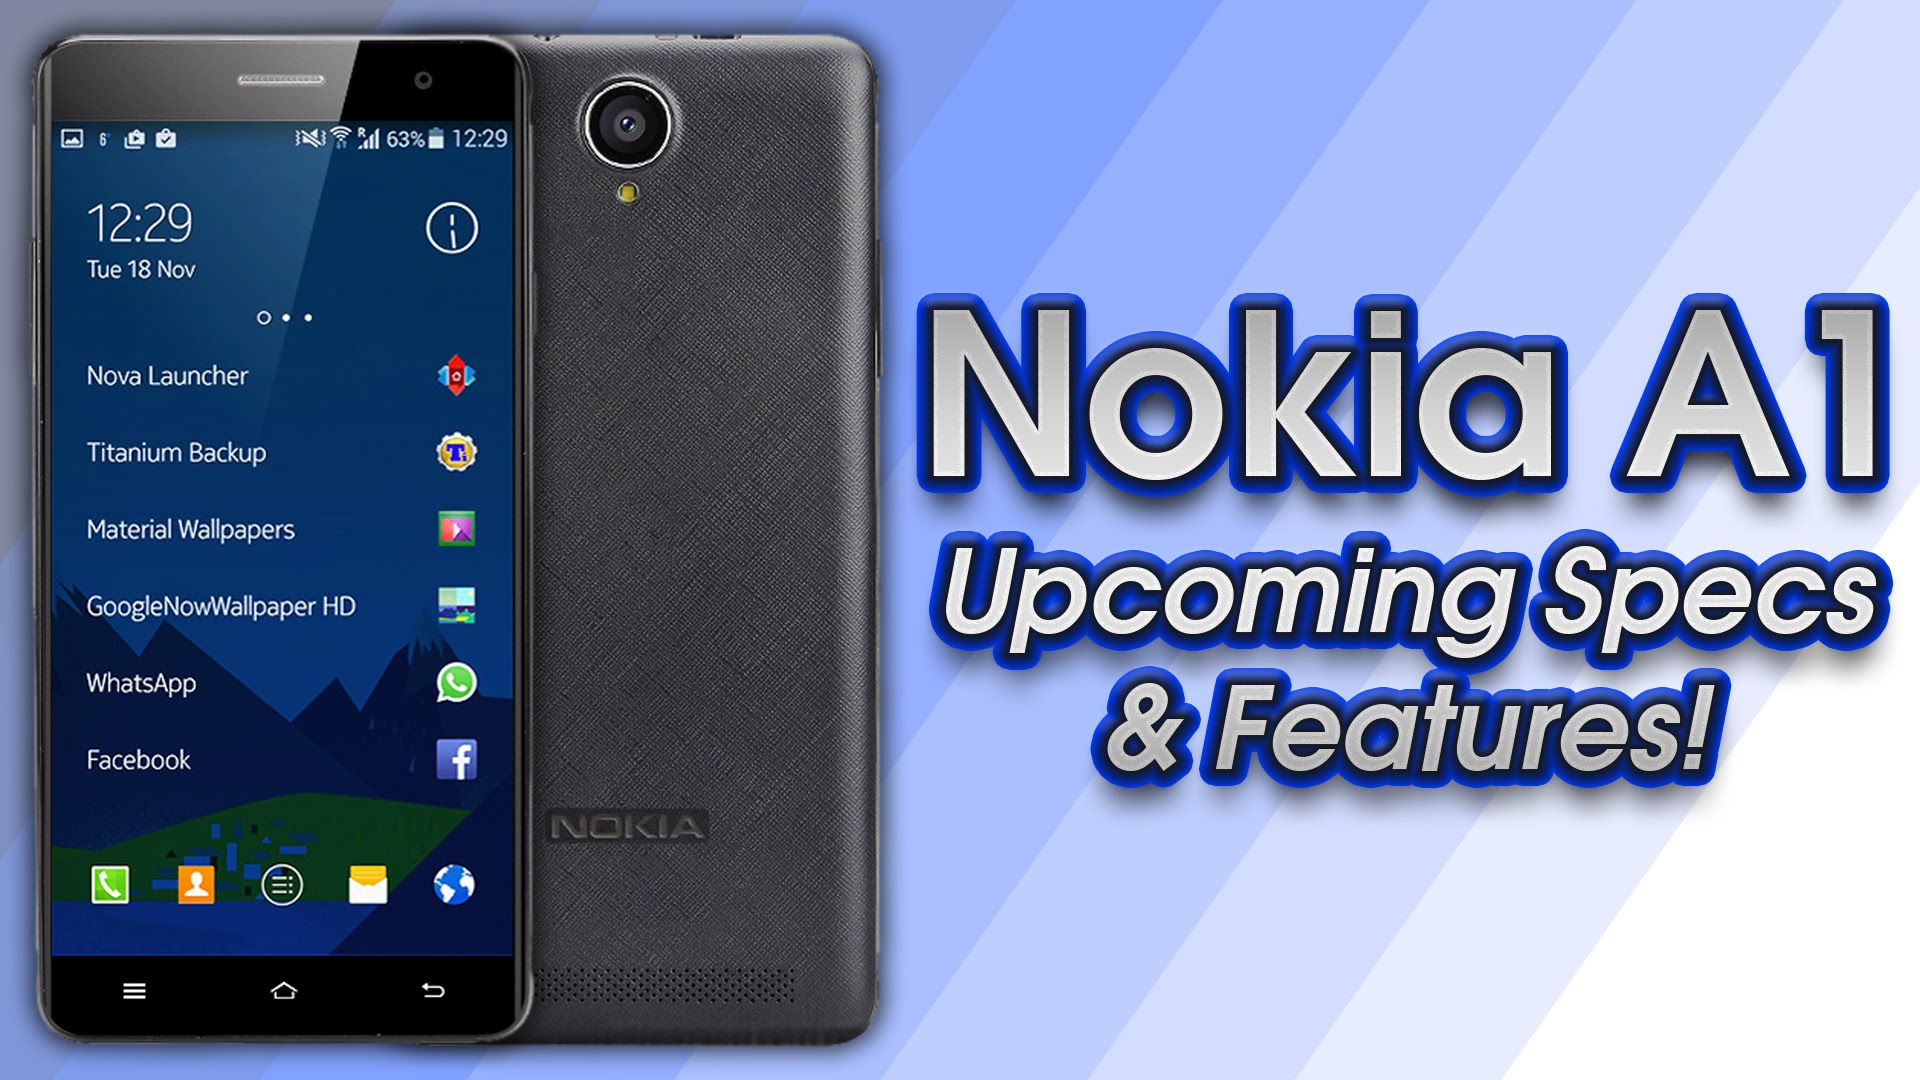 Phone Android Phone From Nokia nokia a1 android price specification in nigeria specs